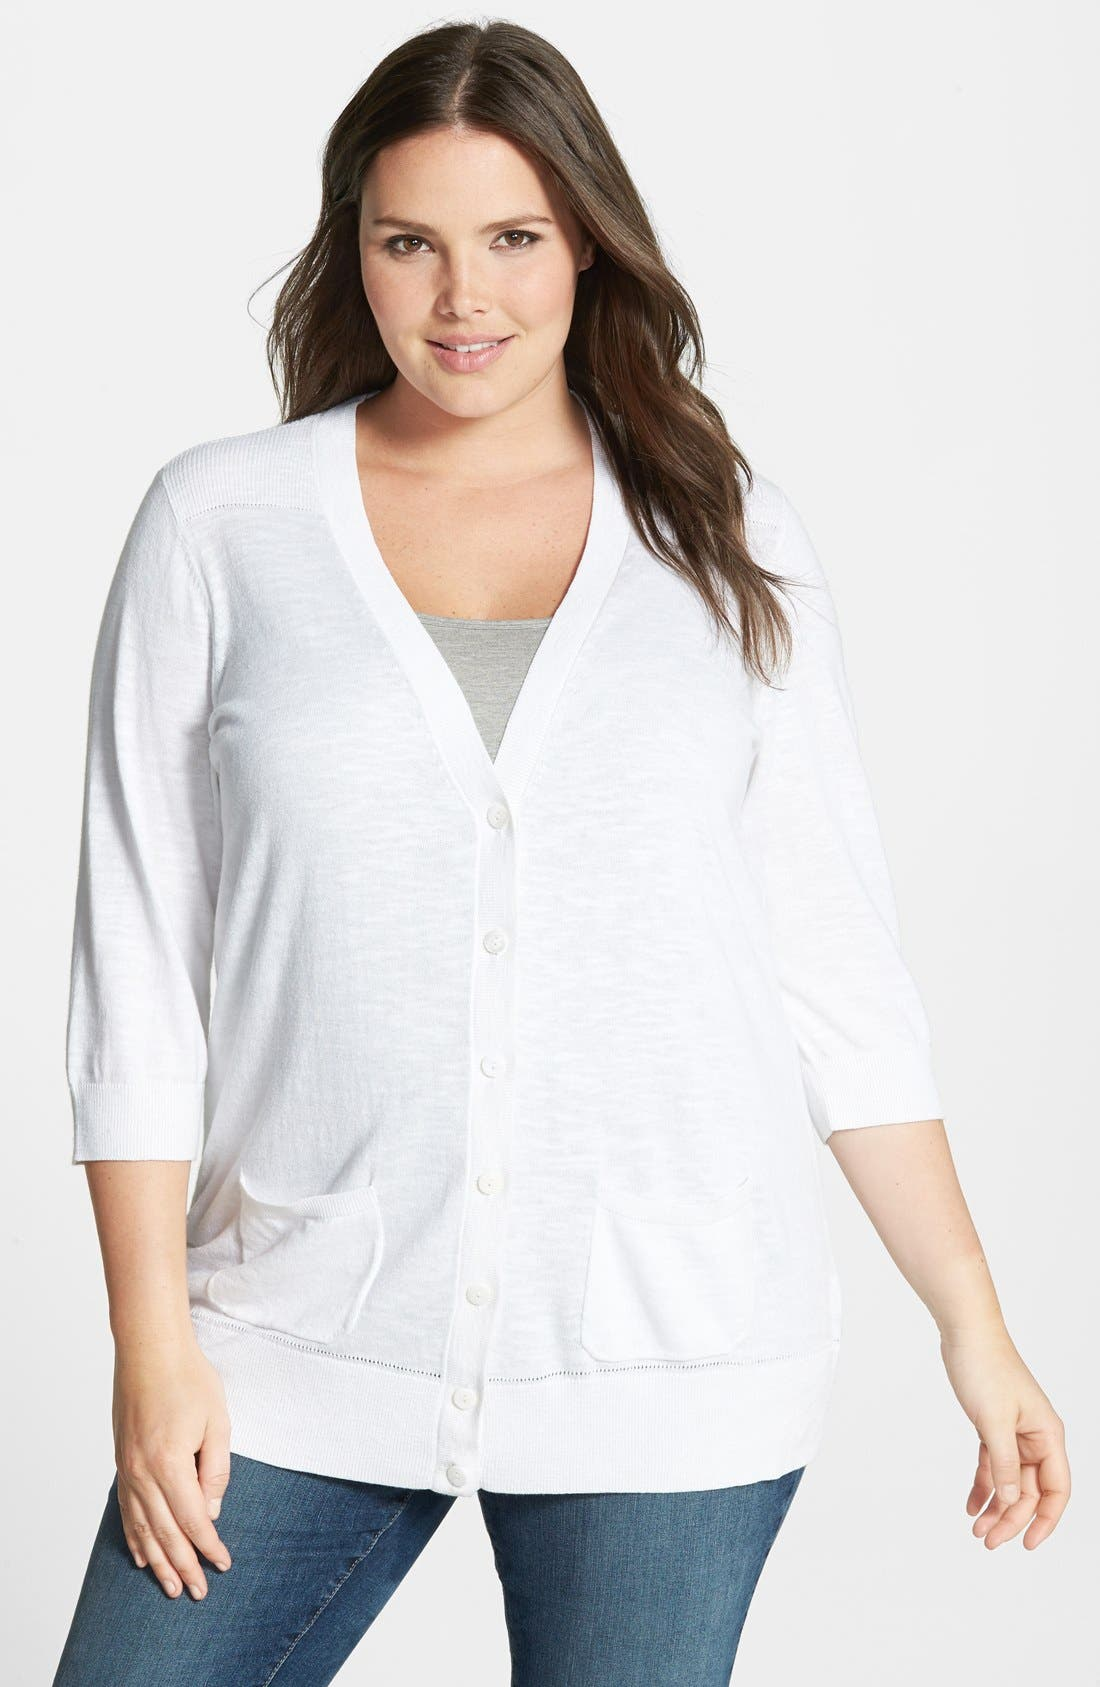 Alternate Image 1 Selected - Sejour 'Telstar Stitch' V-Neck Cardigan (Plus Size)